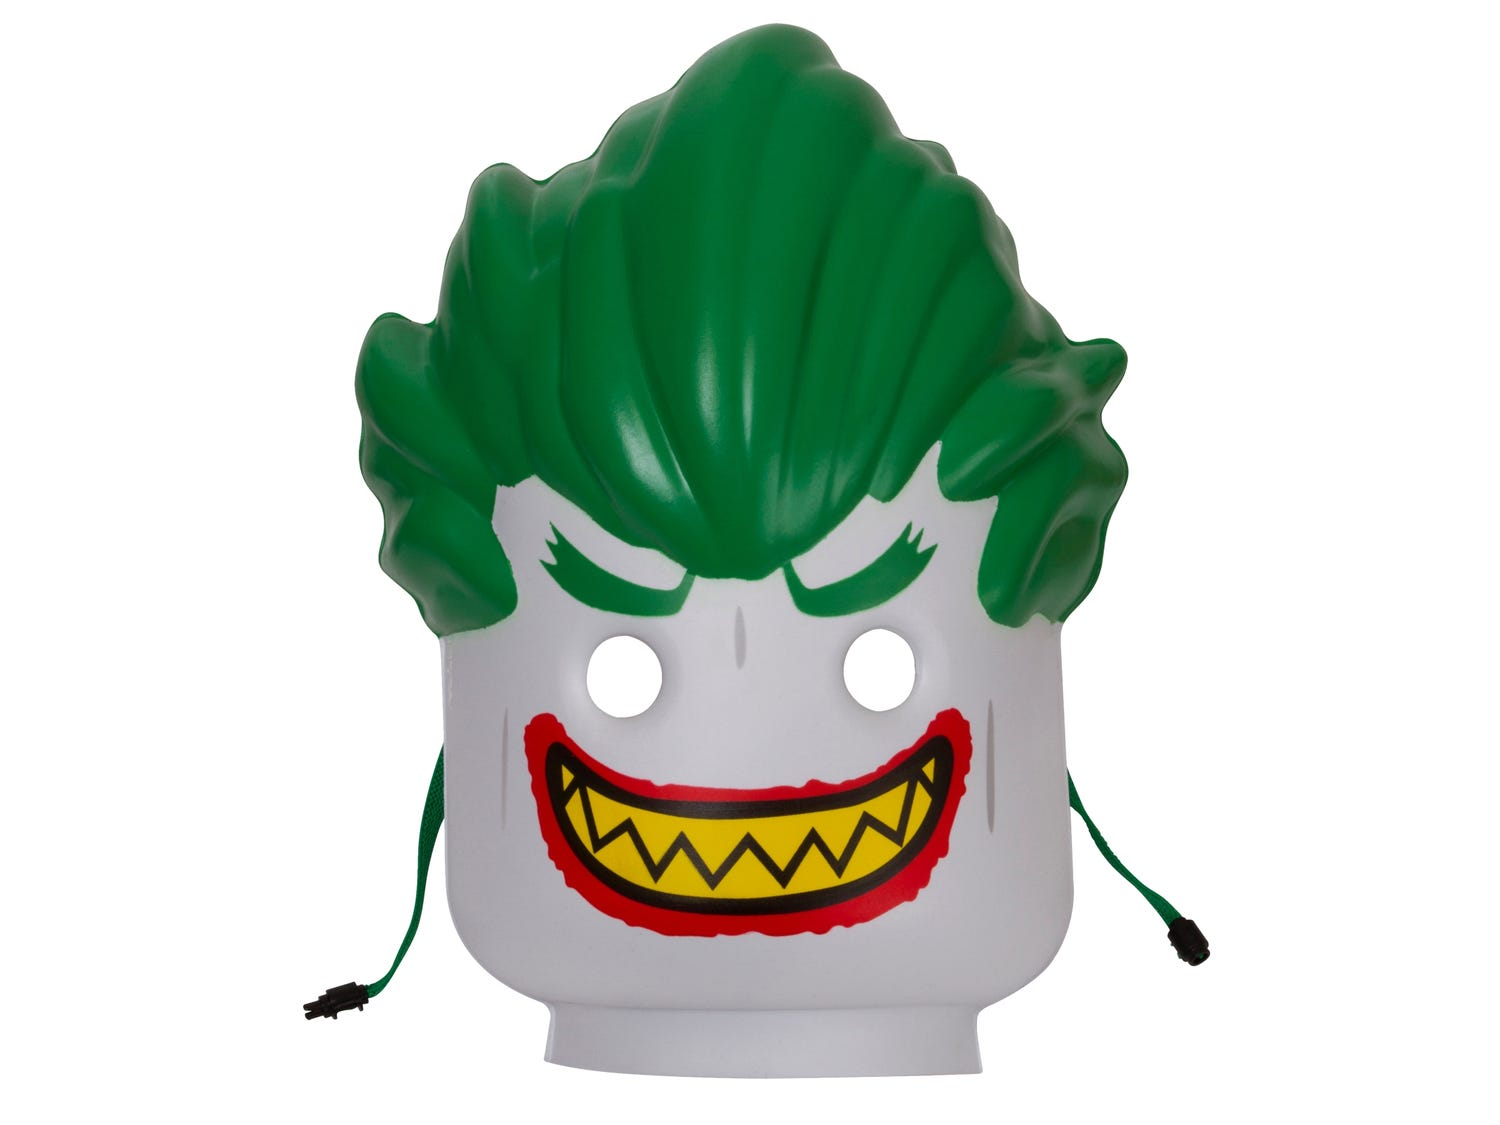 The Lego Batman Movie The Joker Mask 853644 The Lego Batman Movie Buy Online At The Official Lego Shop Be